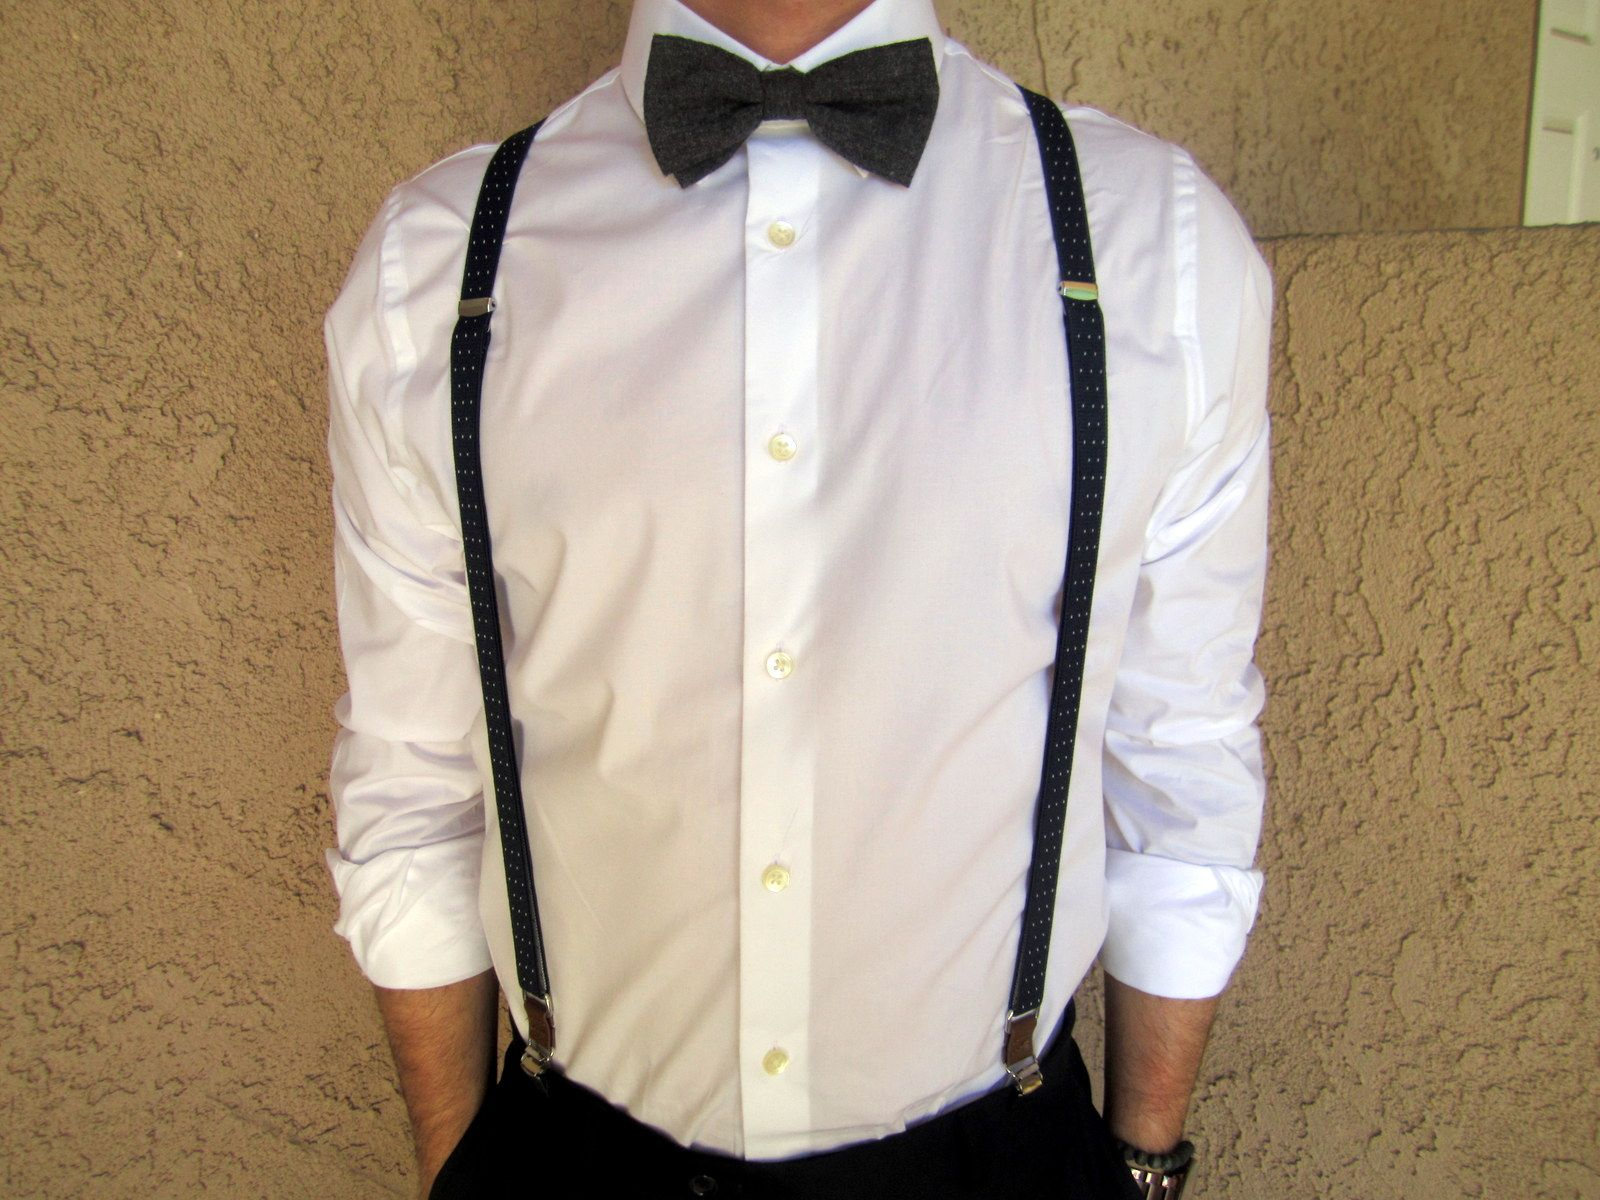 Suspenders, Men's Suspenders, Suspenders for Men, Leather Suspenders | SuspenderStoreHuge Selection· Licensed Characters· Featured Products· Since Types: Men, Women, Kids, Youth, Novelty.